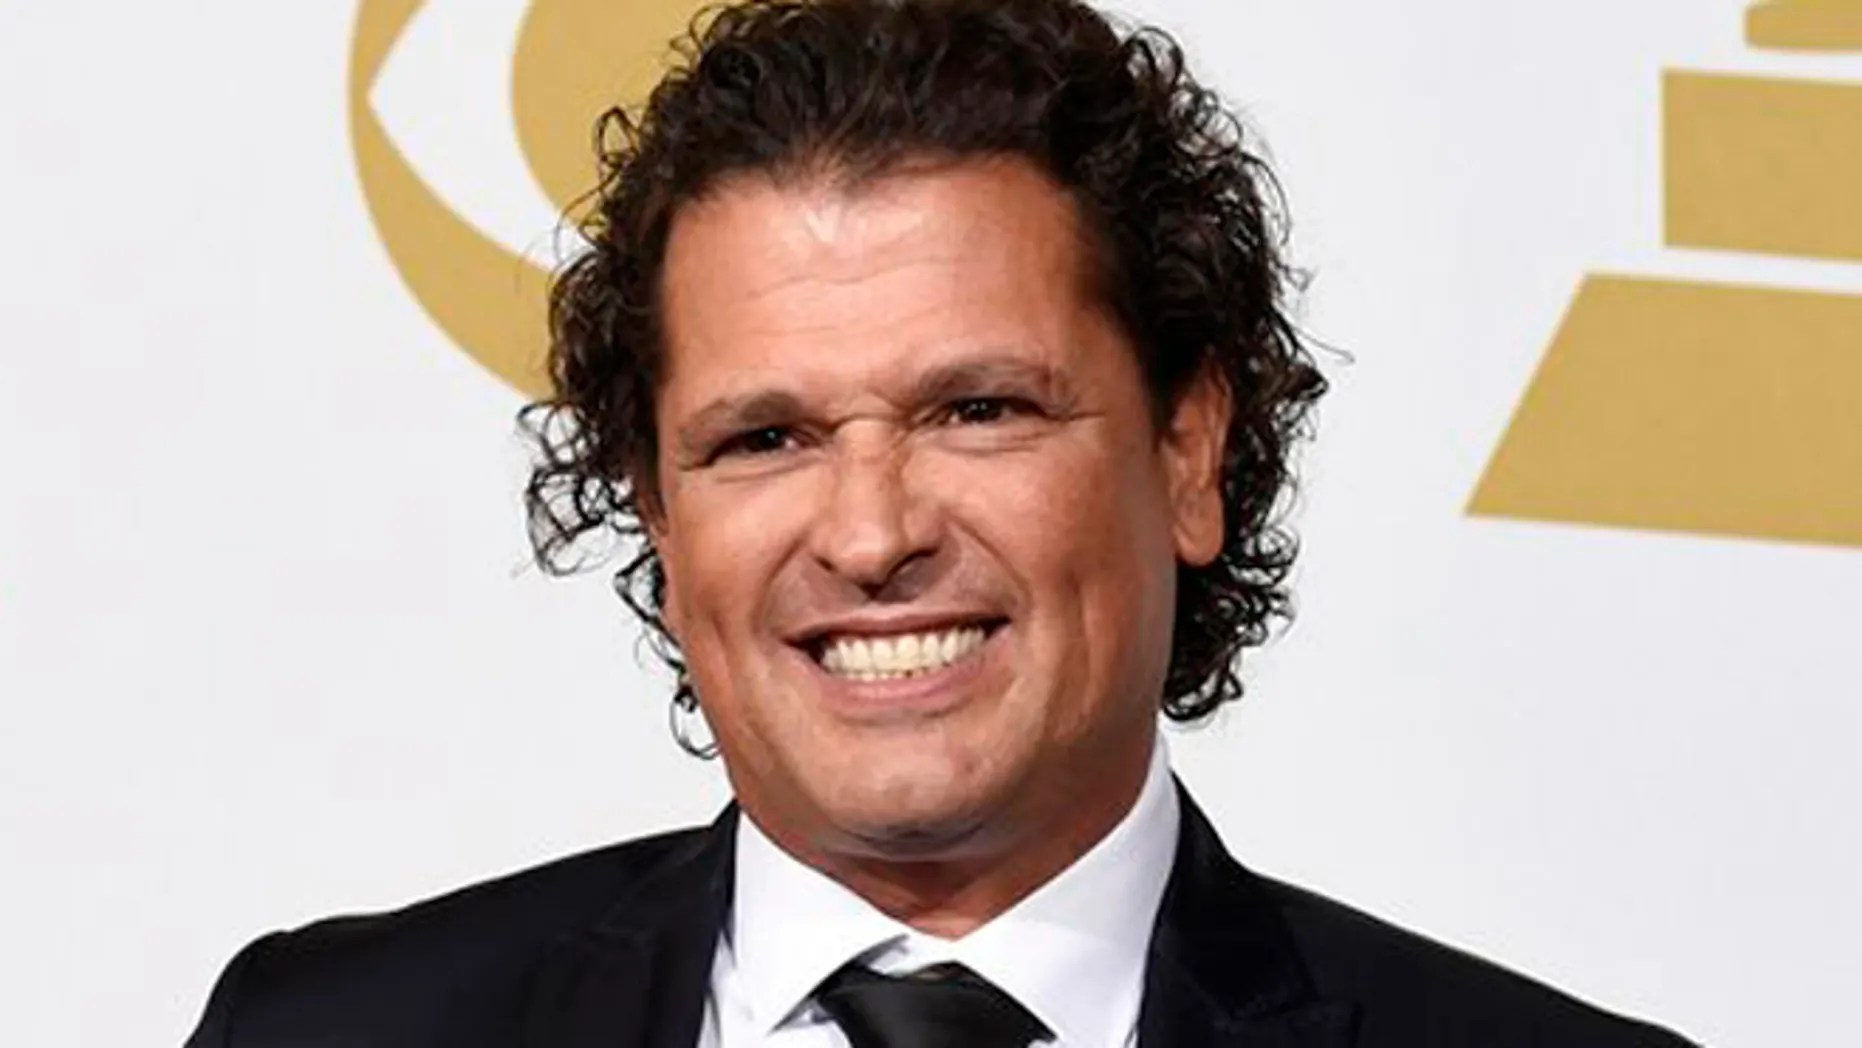 Carlos Vives Says Collab With Shakira On His Next Album